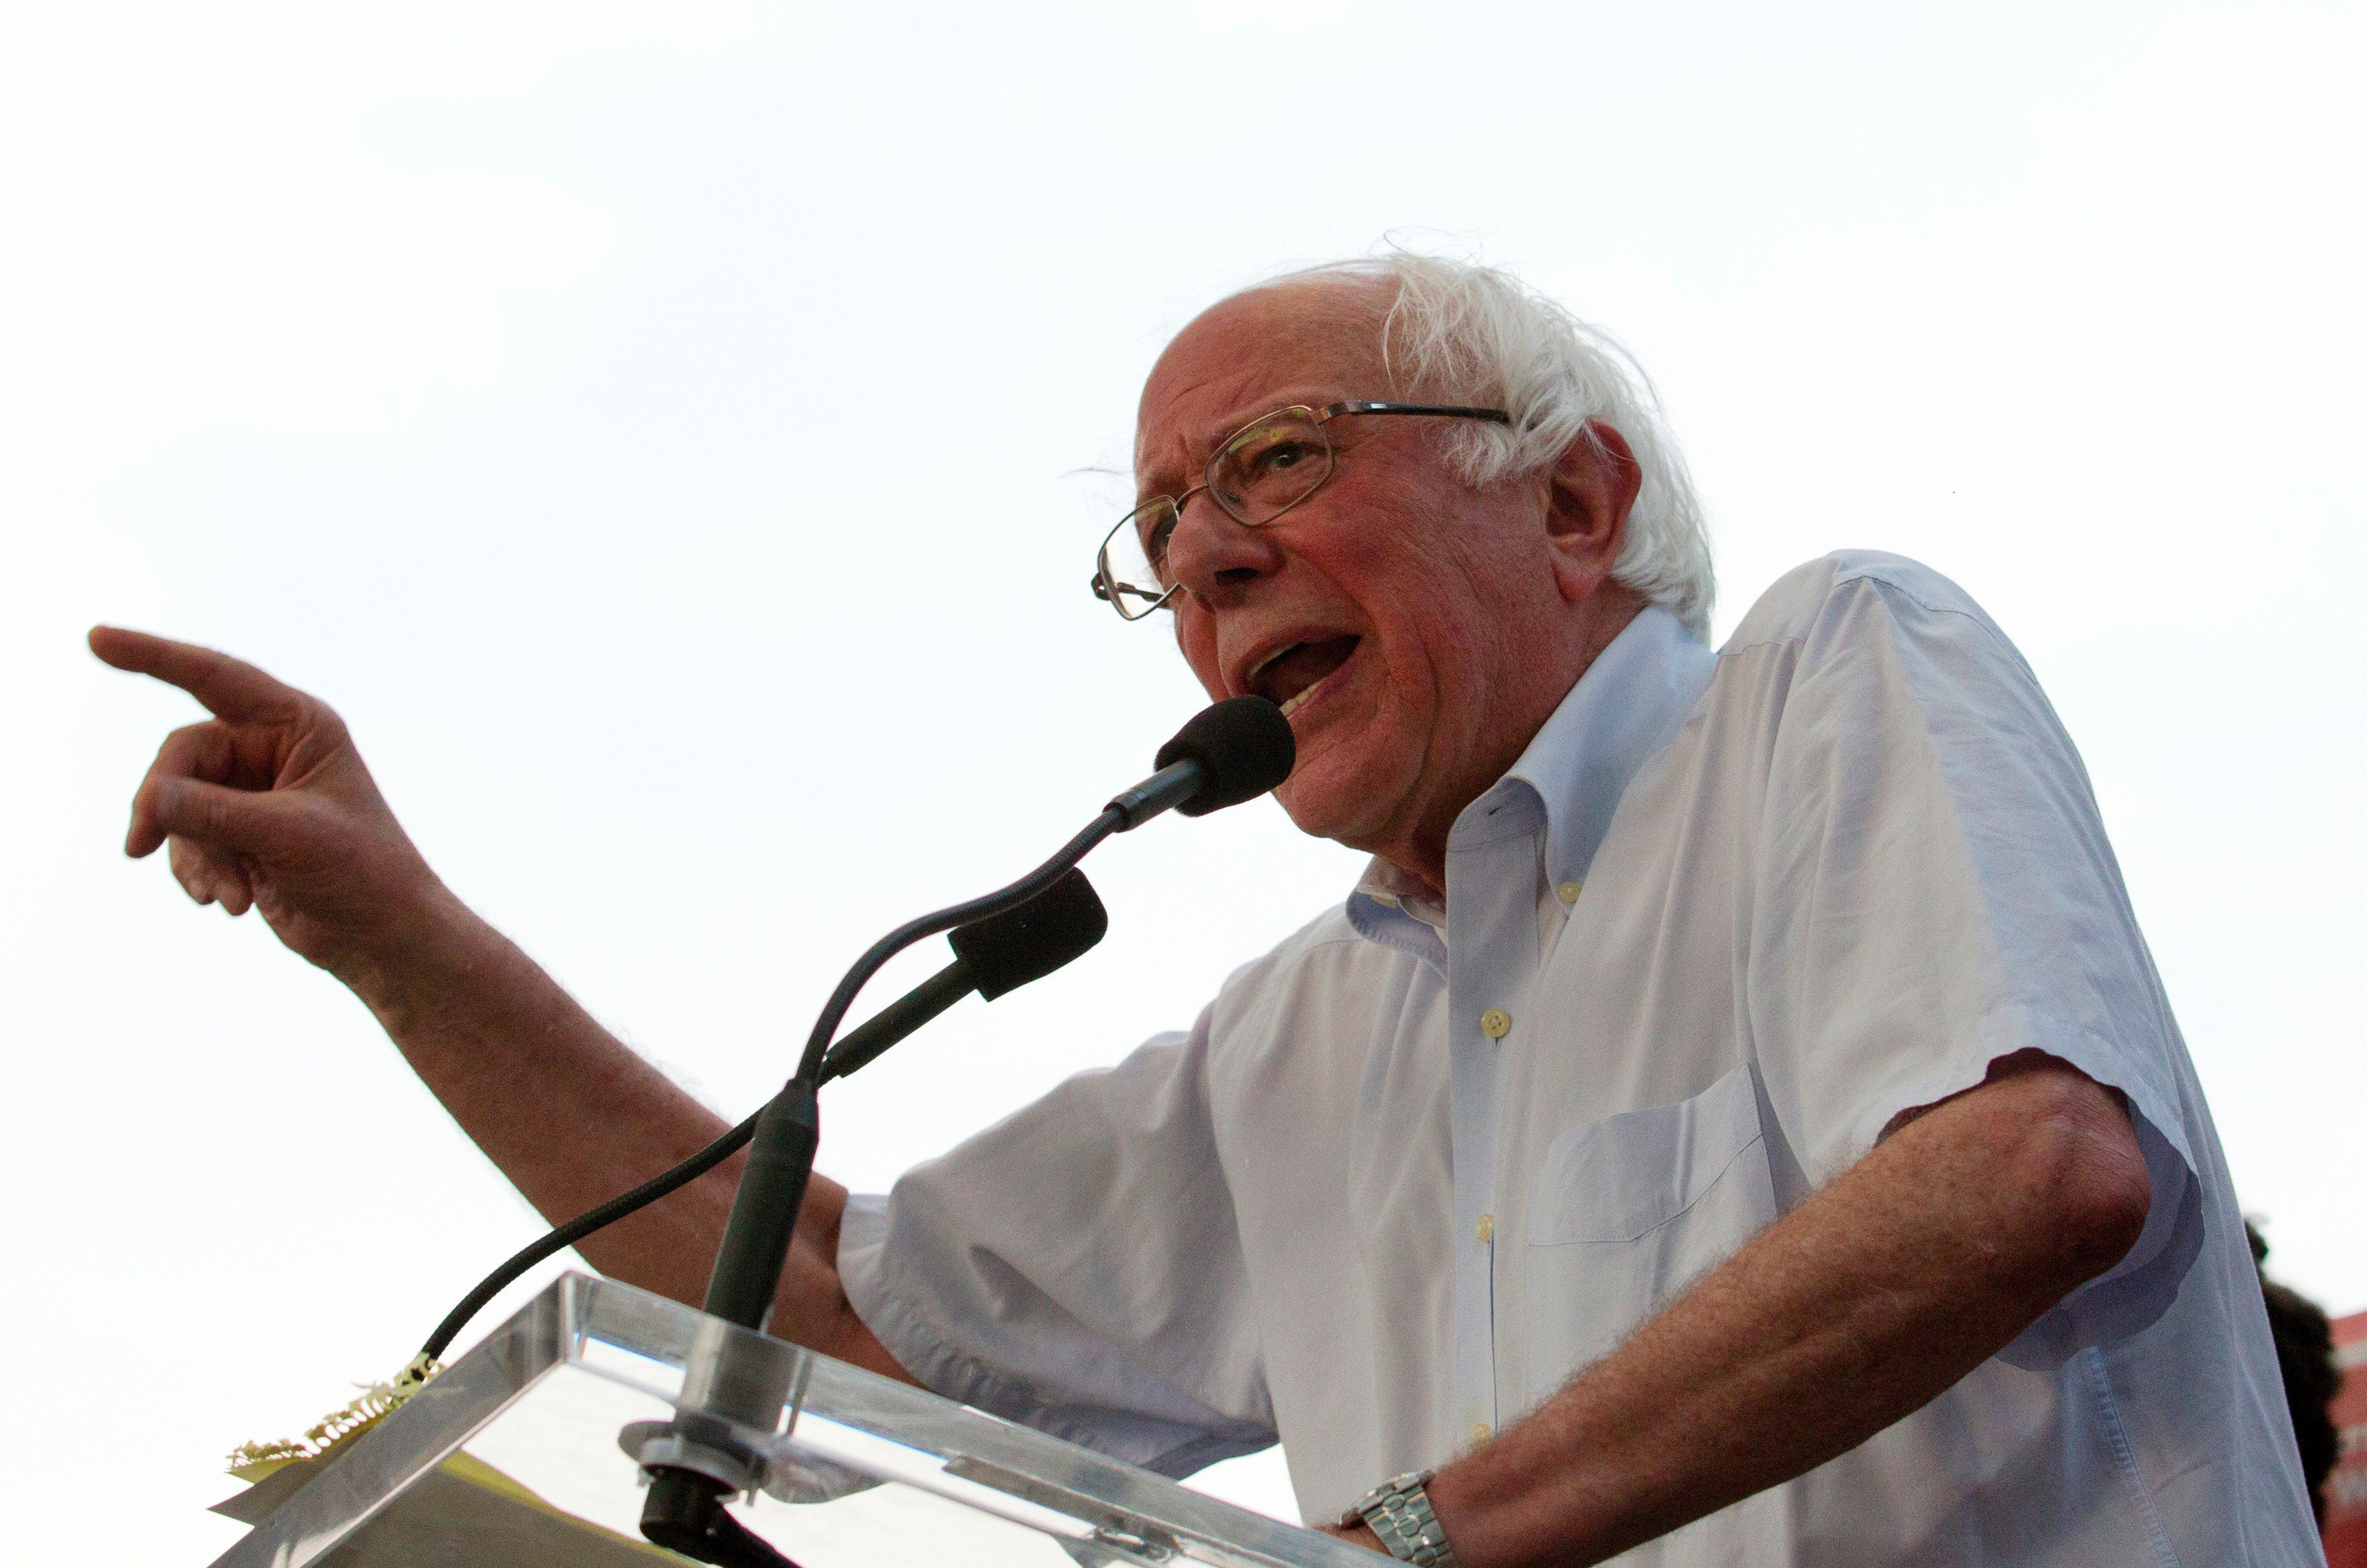 Bernie Sanders raises $6 million in first 24 hours